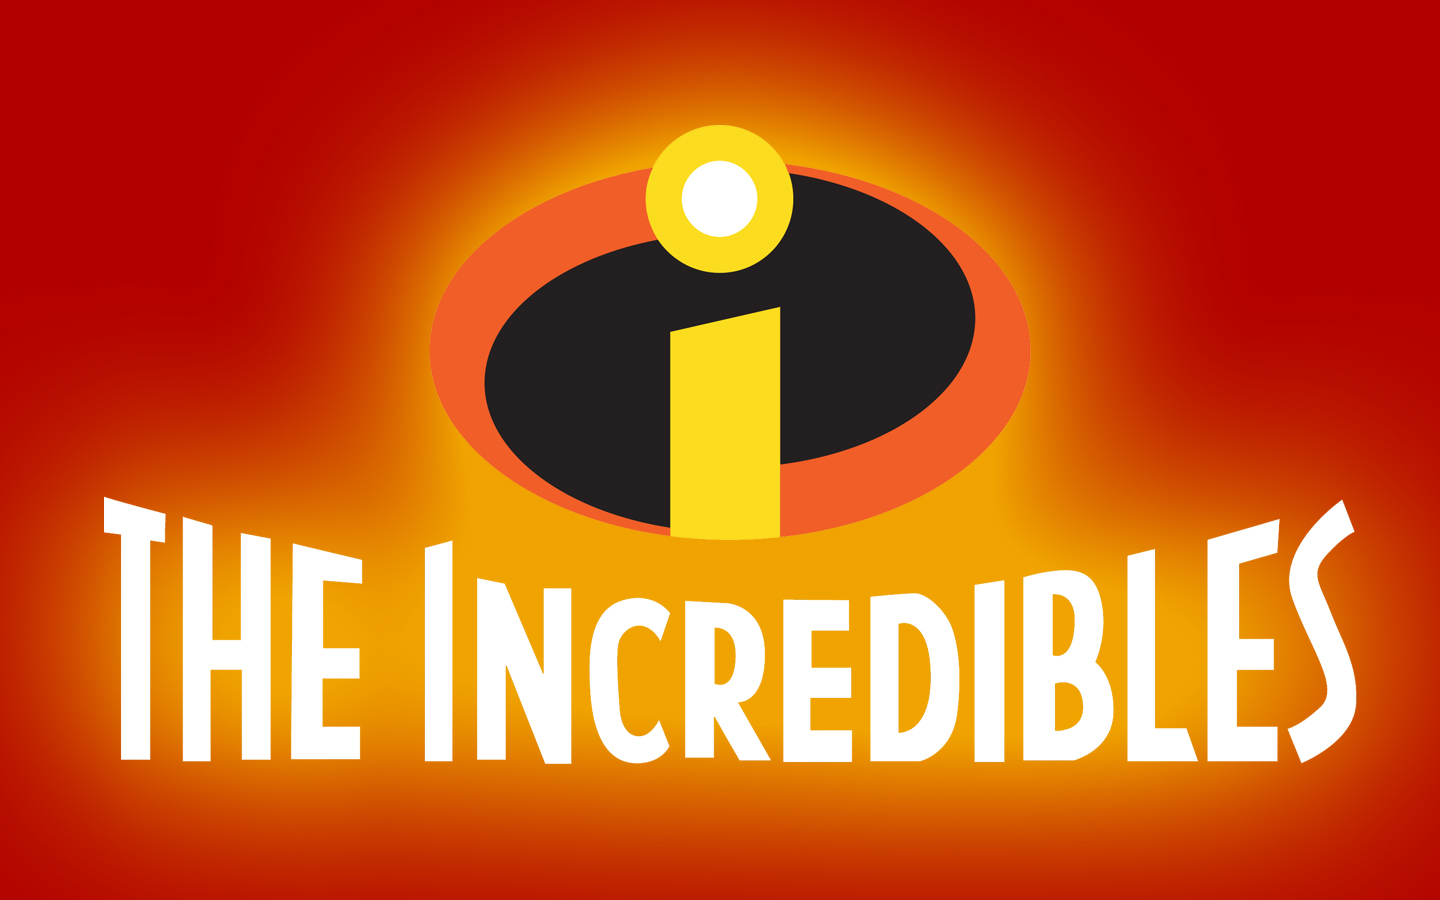 graphic regarding Incredibles Logo Printable known as The Incredibles Brand - JTA Overall health; San Antonio Dieians